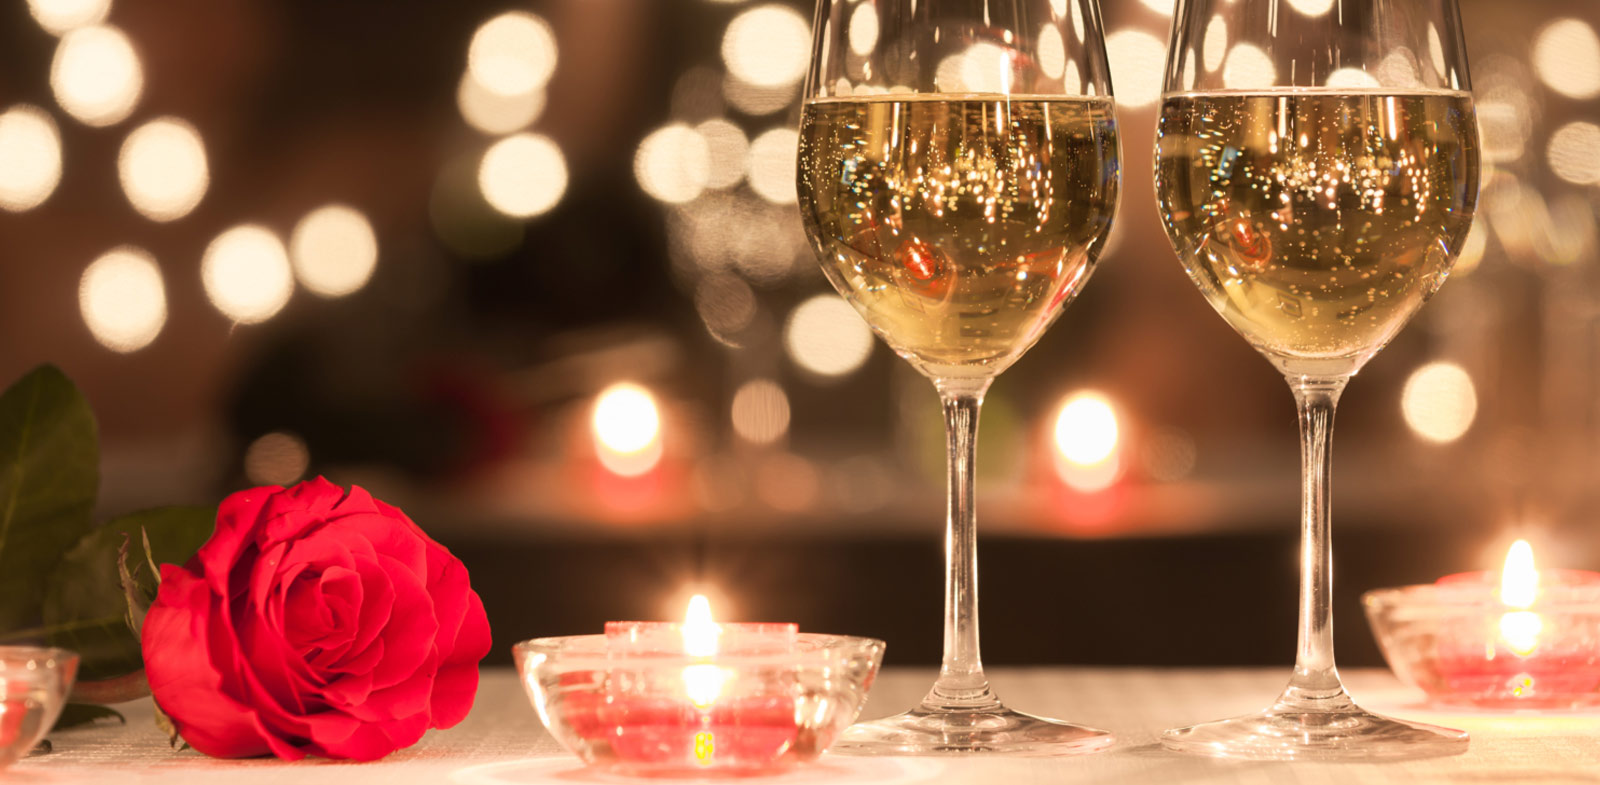 Enjoy a Sumptuous 3-Course Valentine's Day Meal at ROOFTOP at E11EVEN